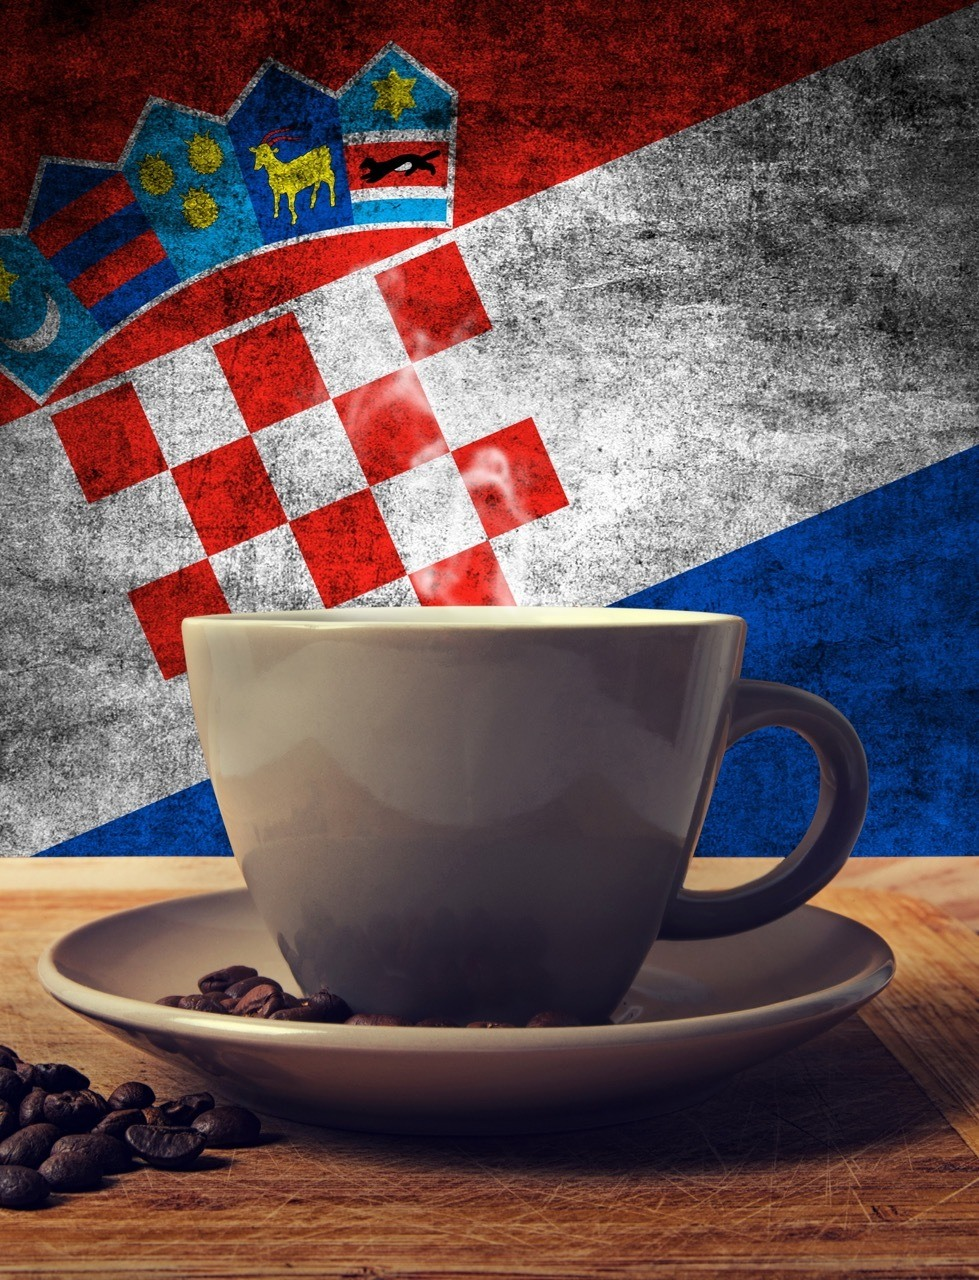 Zagreb Spiza And Coffee - With Flag